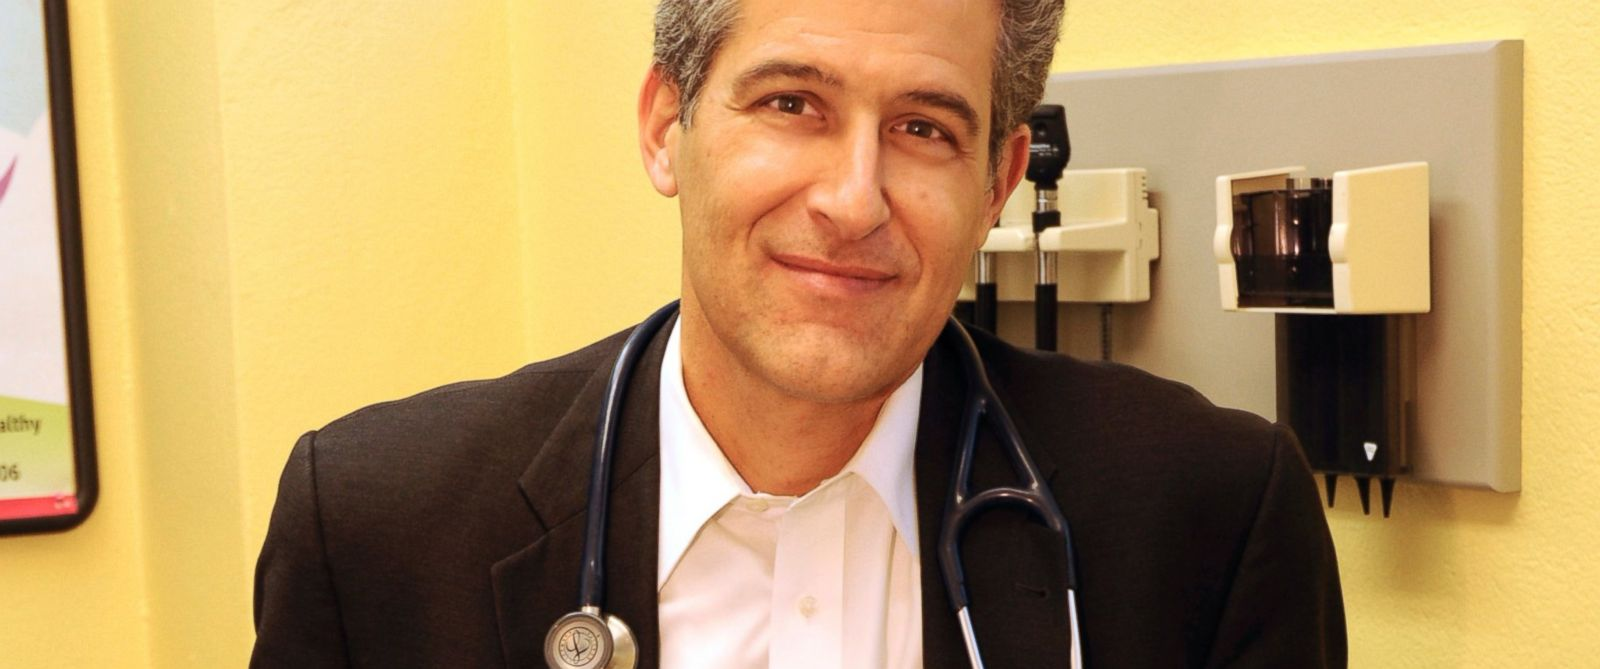 PHOTO: Dr. Richard Besser, seen here, is ABC News Chief Health and Medical Editor.